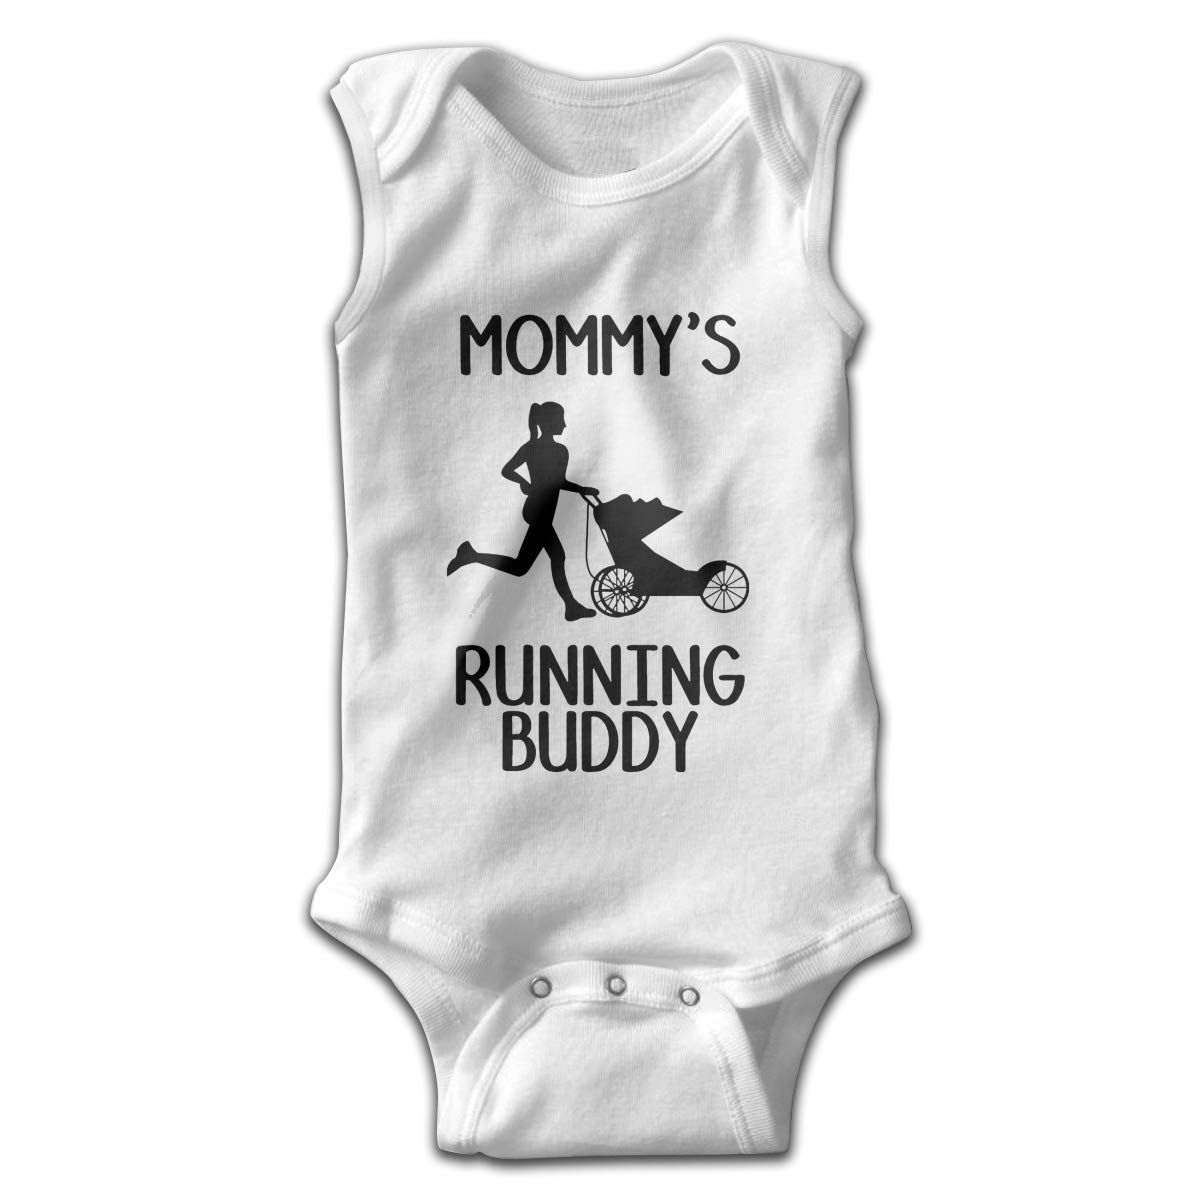 Mommy Running Buddy Newborn Baby Clothes Layette Sleeveless Summer Novelty Funny Gift for Baby